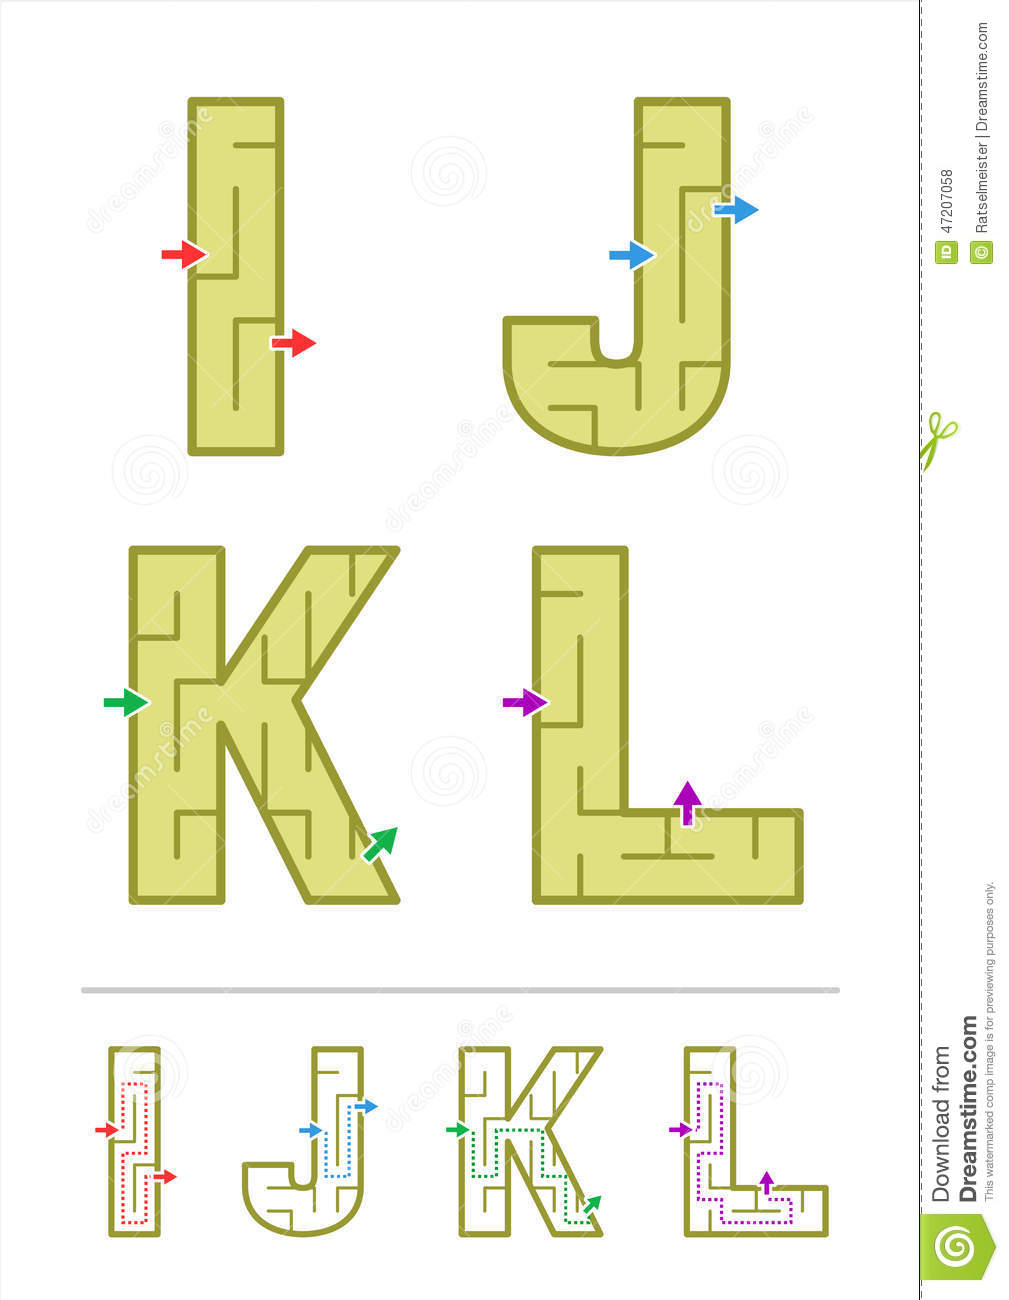 Alphabet Maze Games I, J, K, L Stock Vector - Image: 47207058